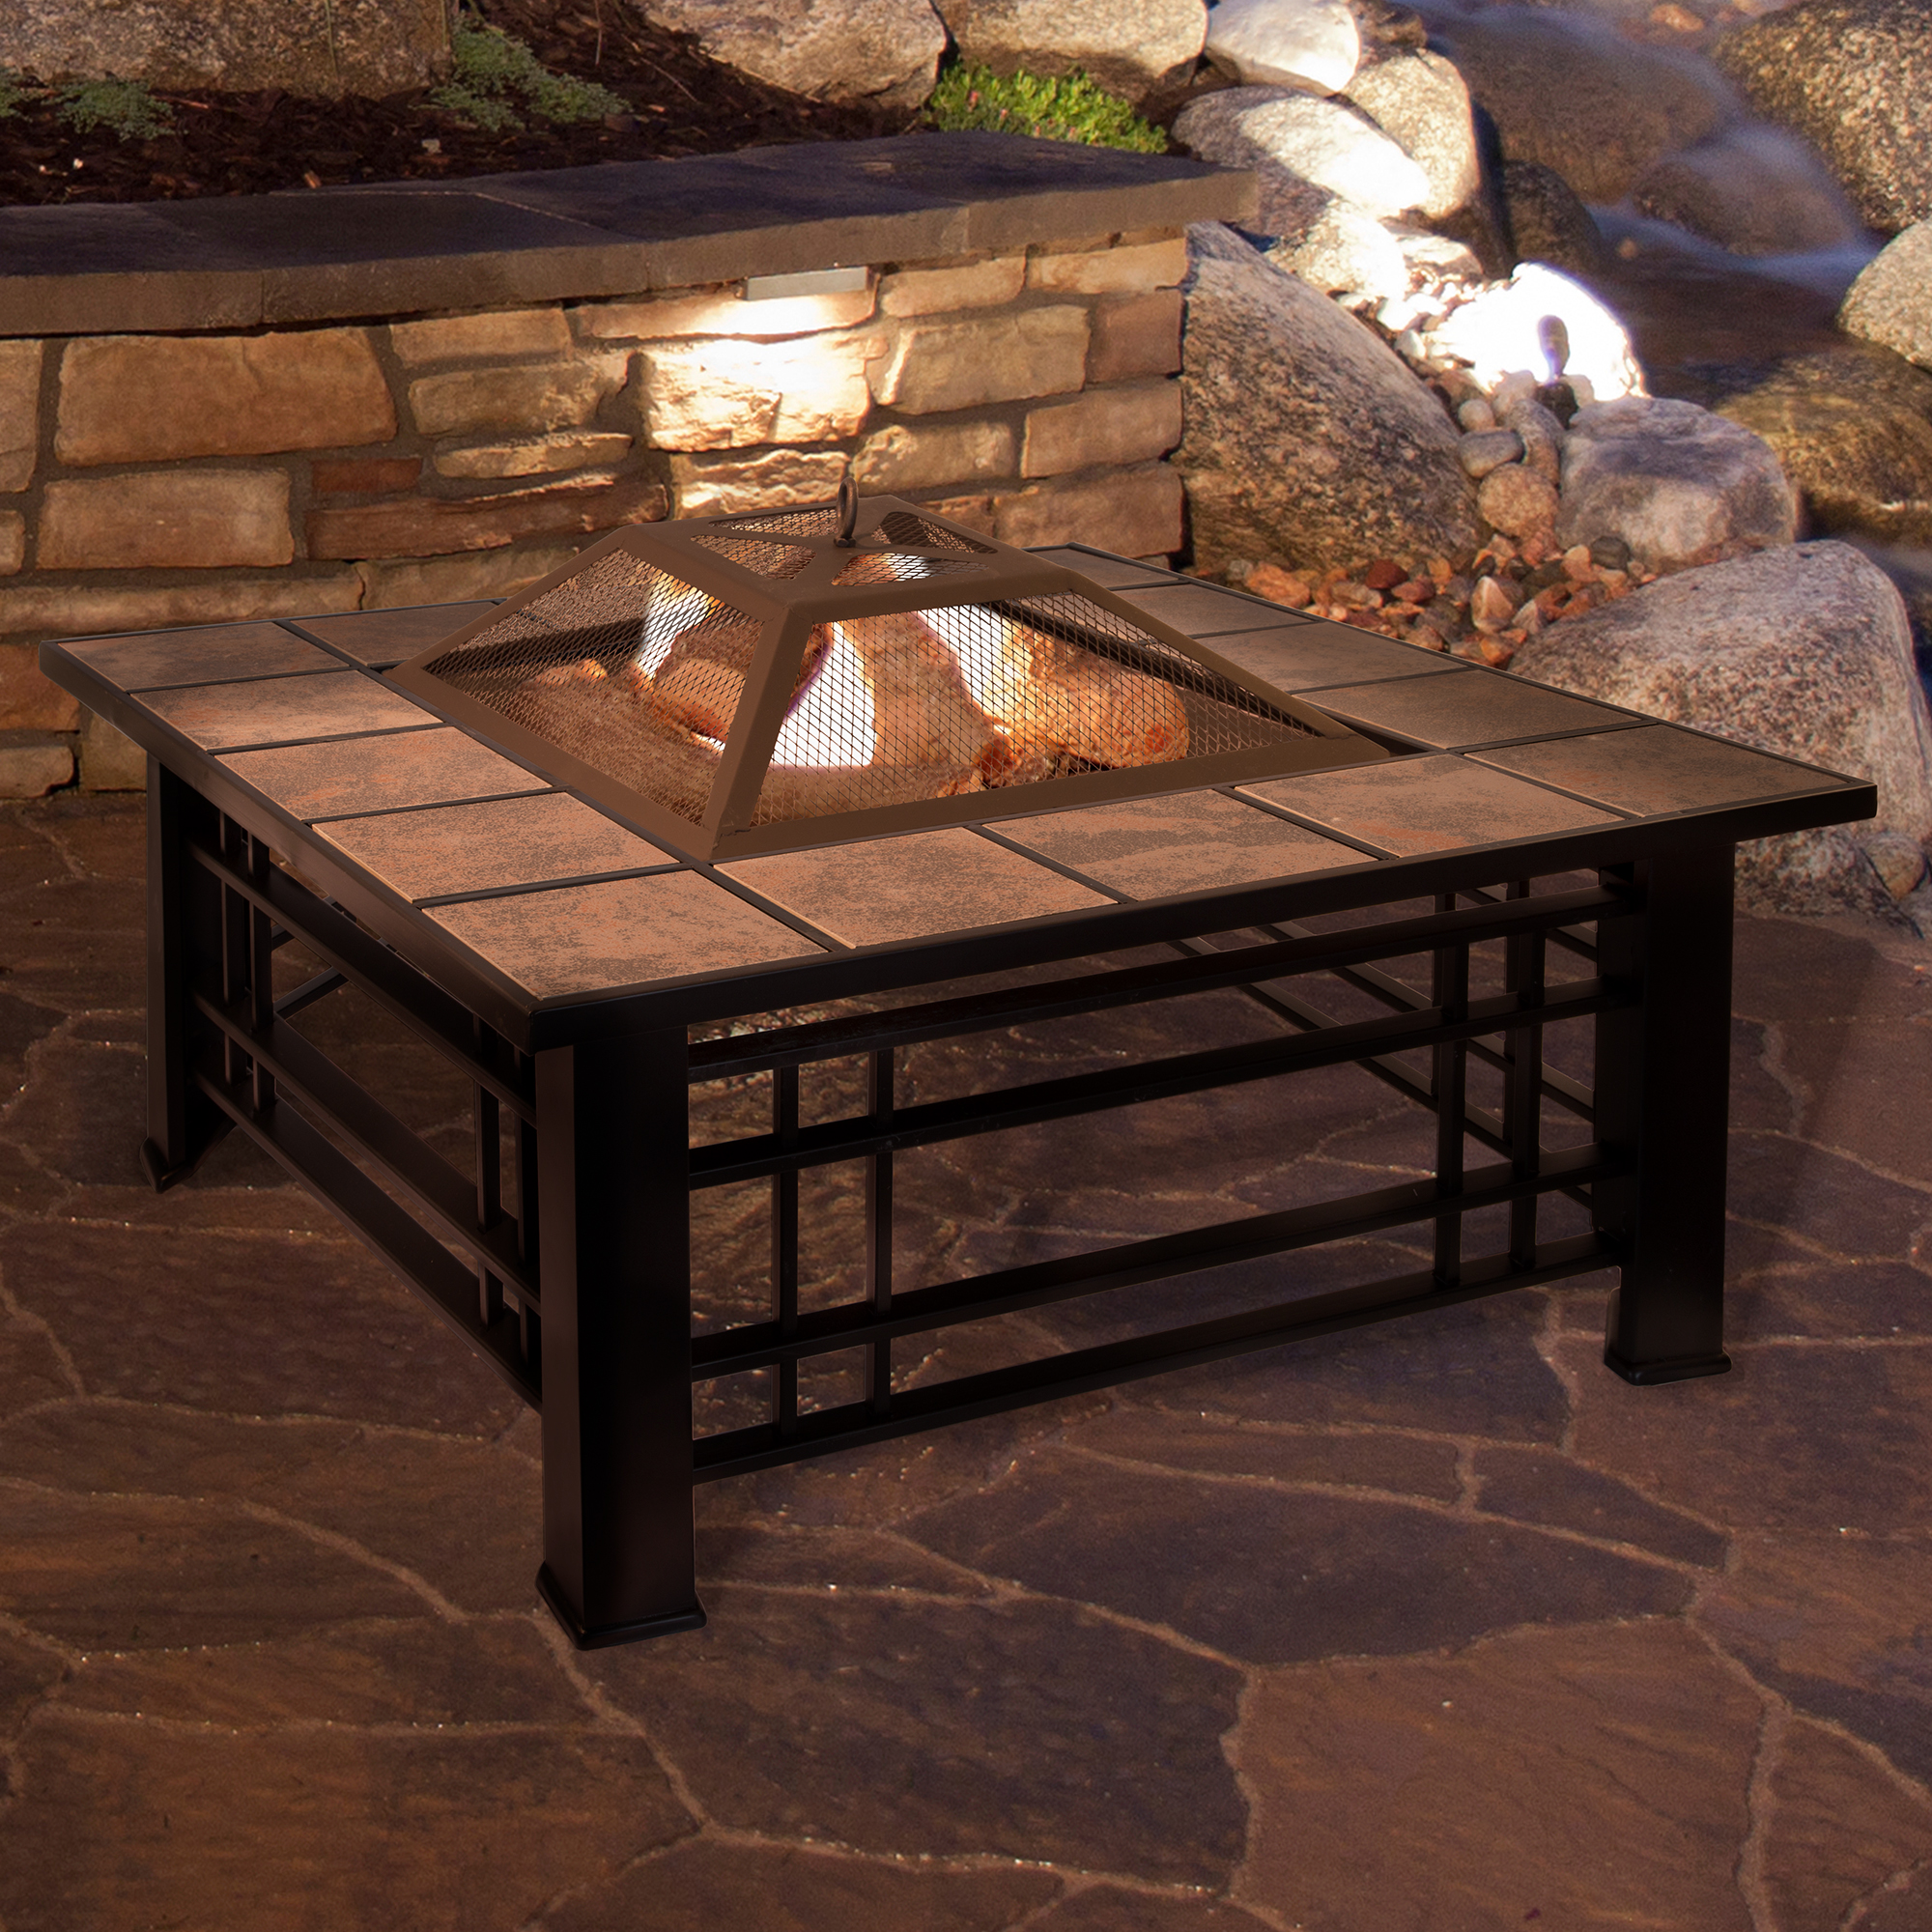 "Fire Pit Set, Wood Burning Pit - Includes Spark Screen and Log Poker - Great for Outdoor and Patio, 32"" Square Tile Firepit by Pure Garden"